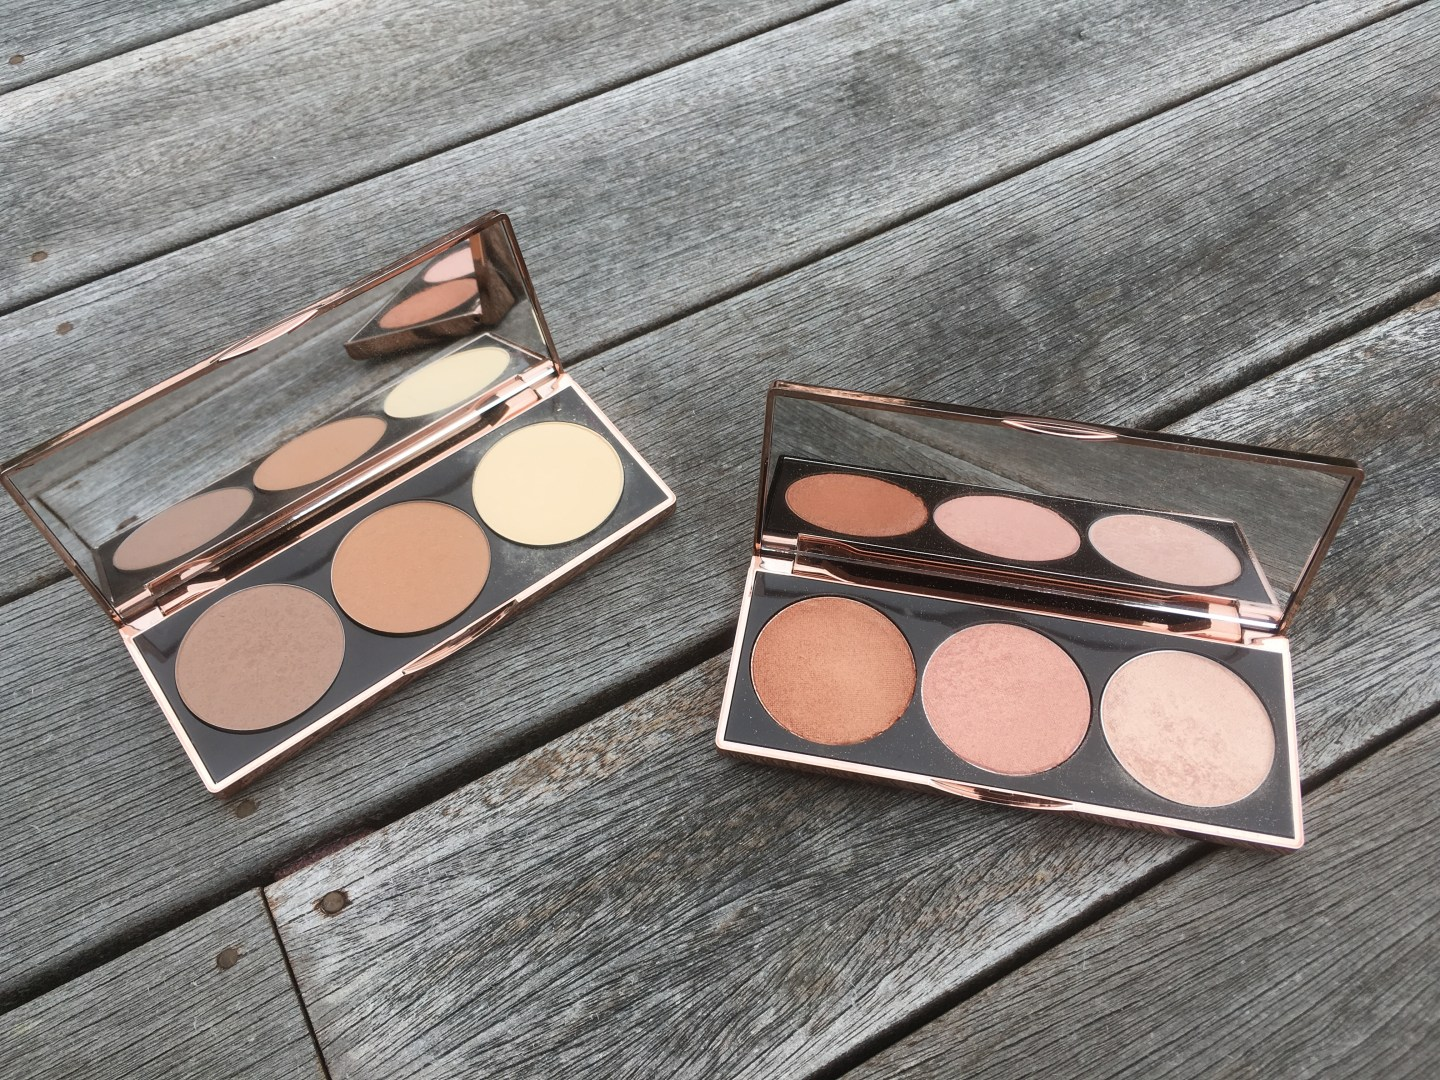 The Nude By Nature Contour and Highlight Palettes